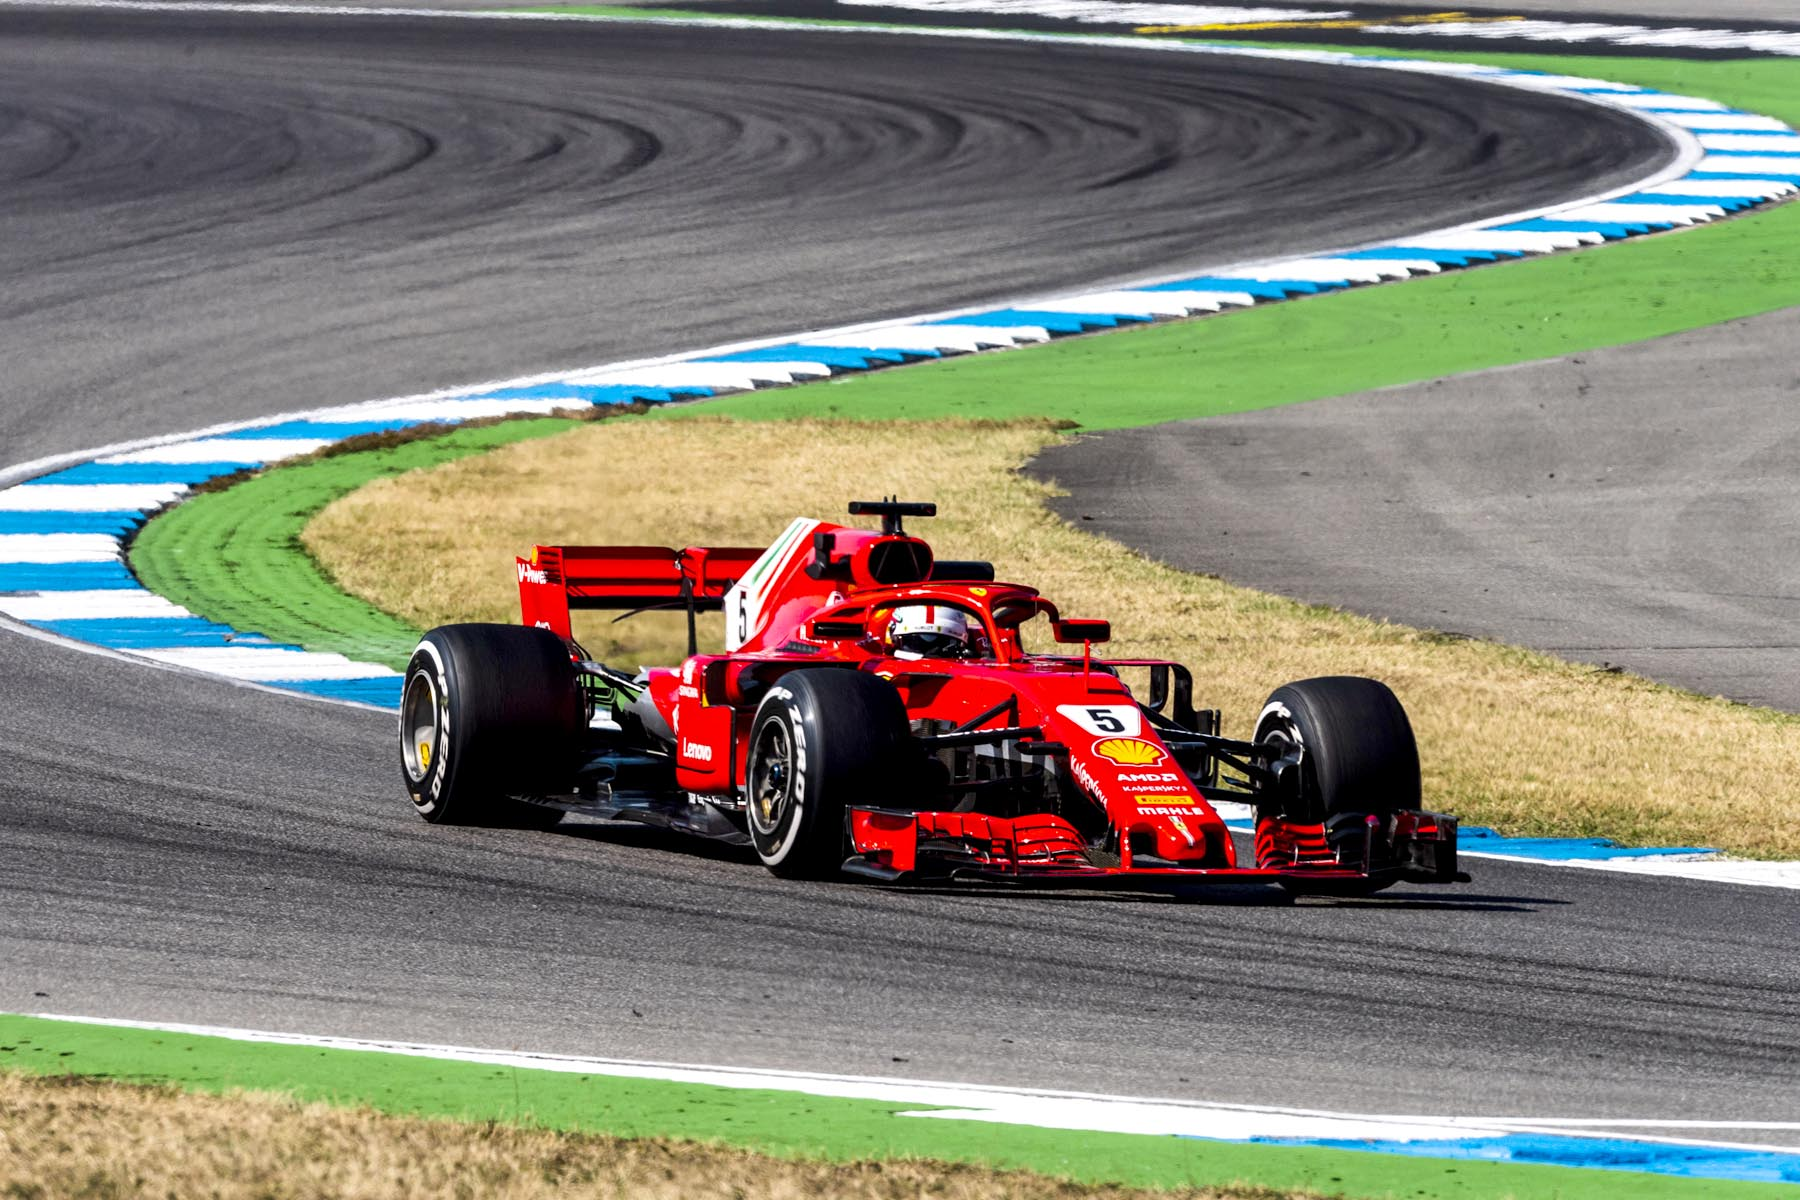 Sebastian Vettel on track at the 2018 German Grand Prix.